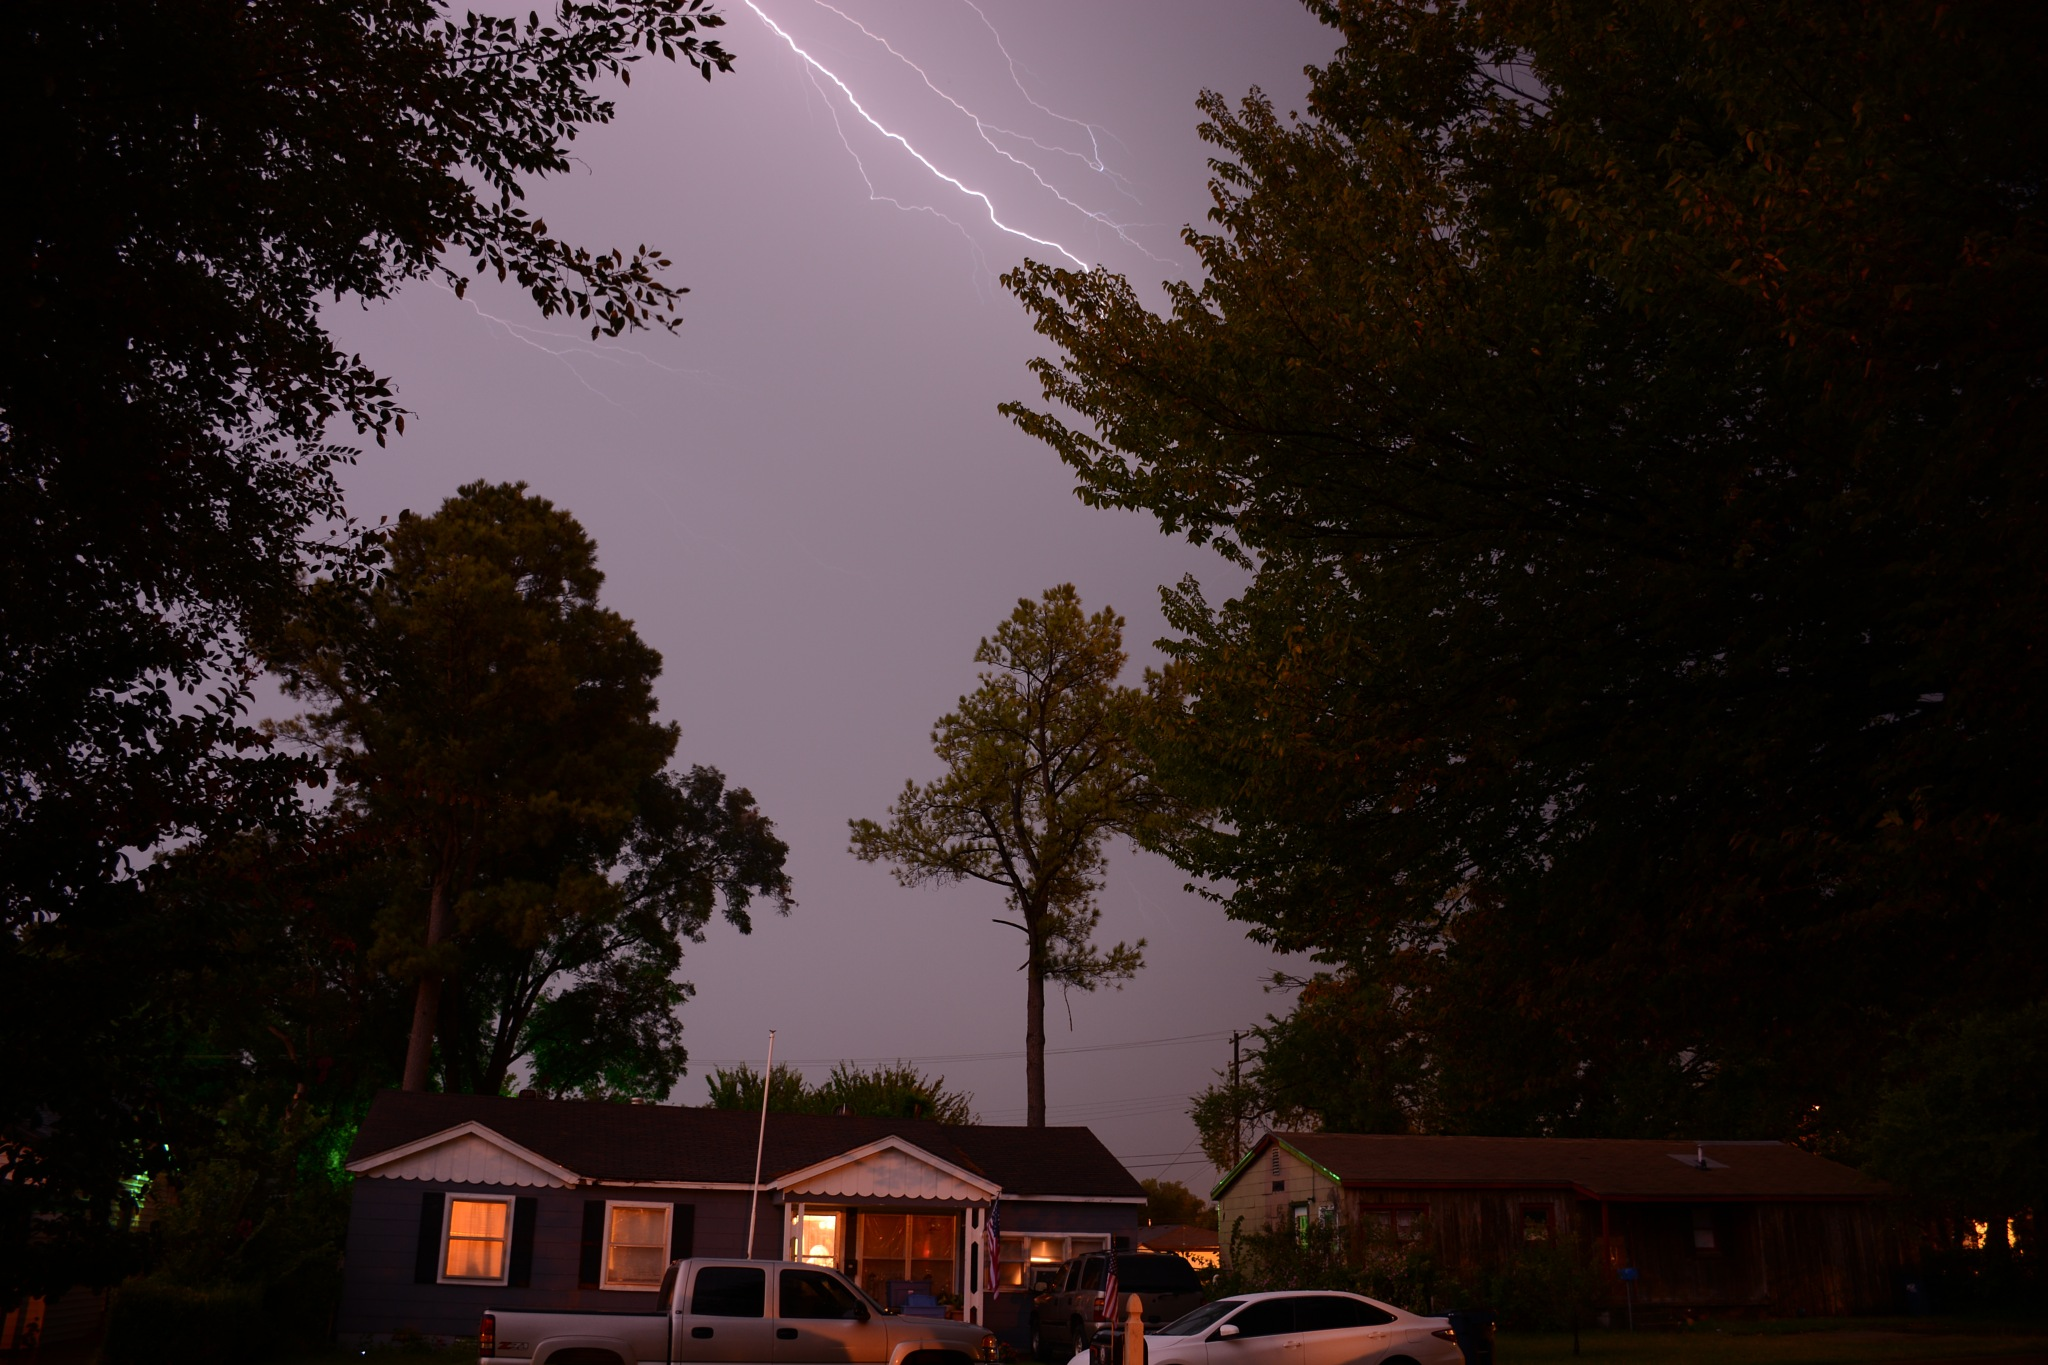 Lightning in the trees by roughneck1-9